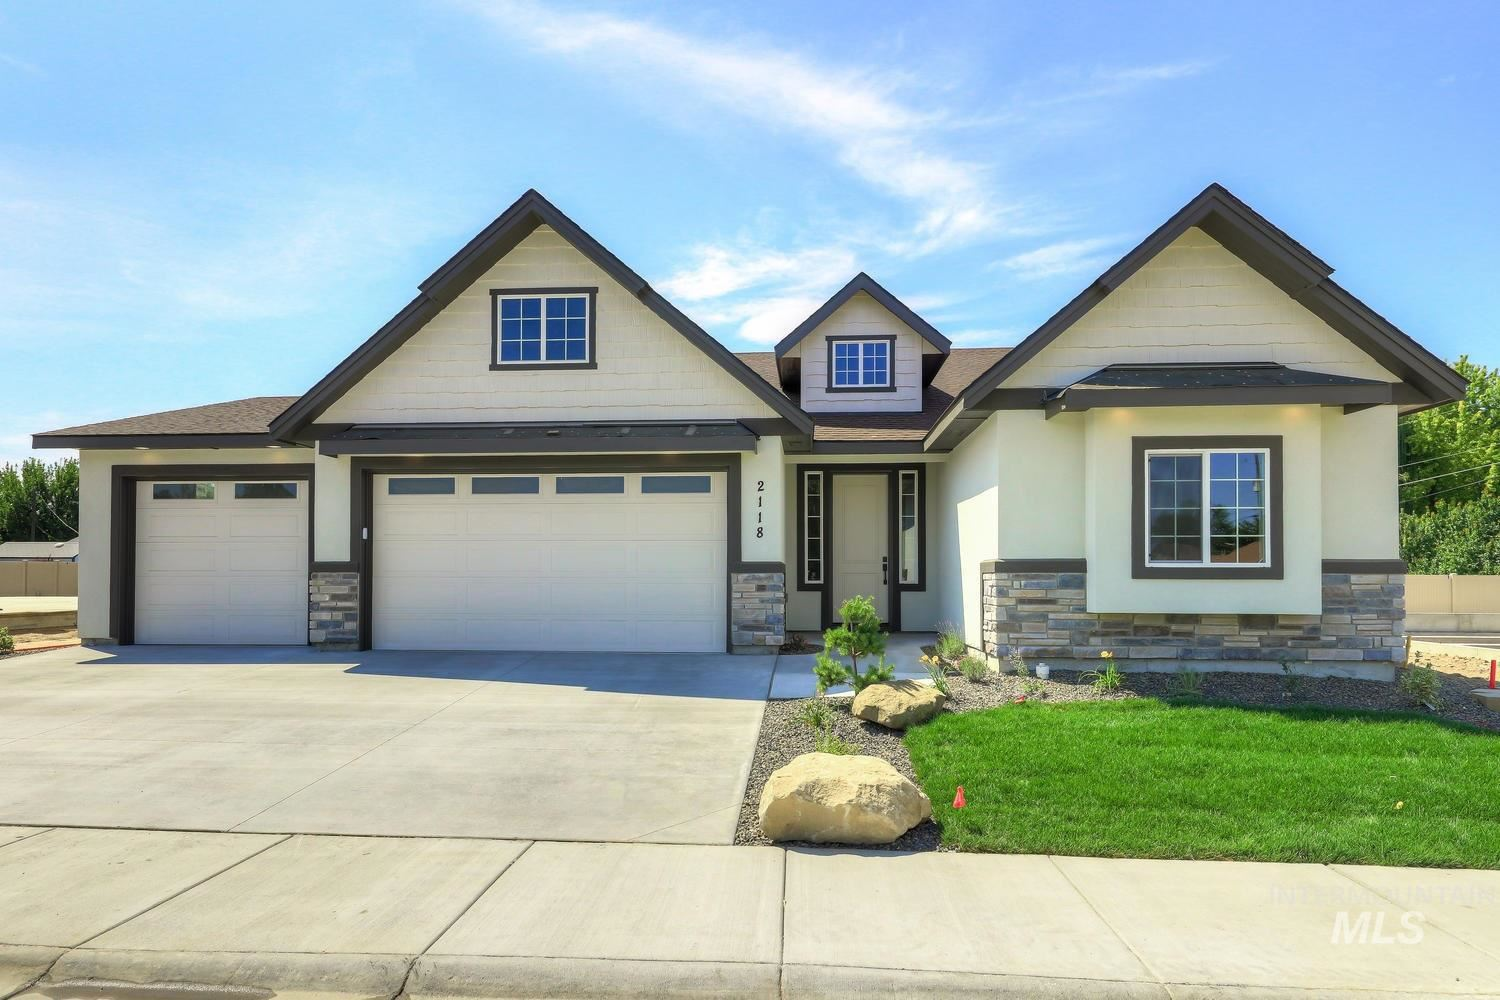 2118 Sunset Ave, Caldwell, ID 83605 - MLS#: 98776921